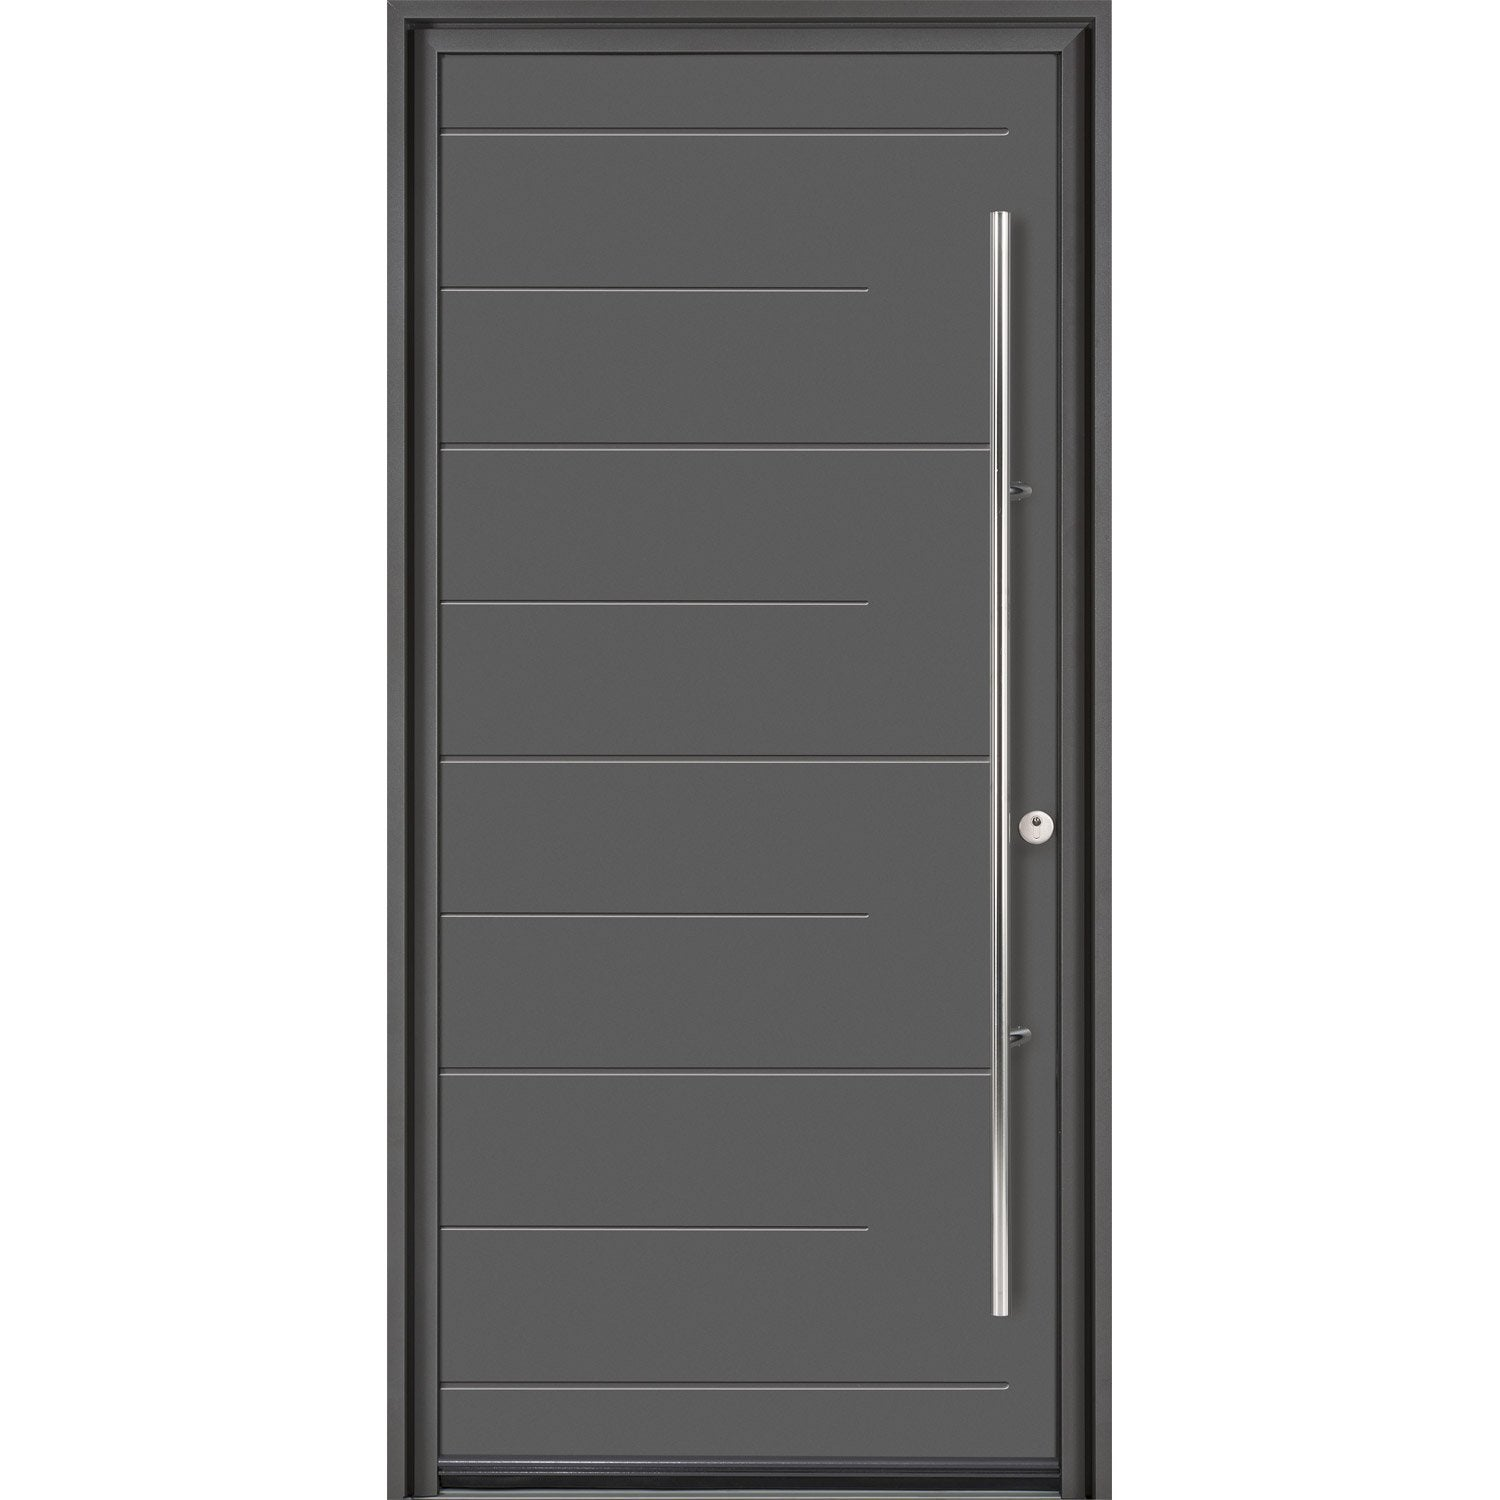 Portes intrieures castorama affordable porte coulissante for Porte de garage coulissante avec porte d entrée pvc castorama